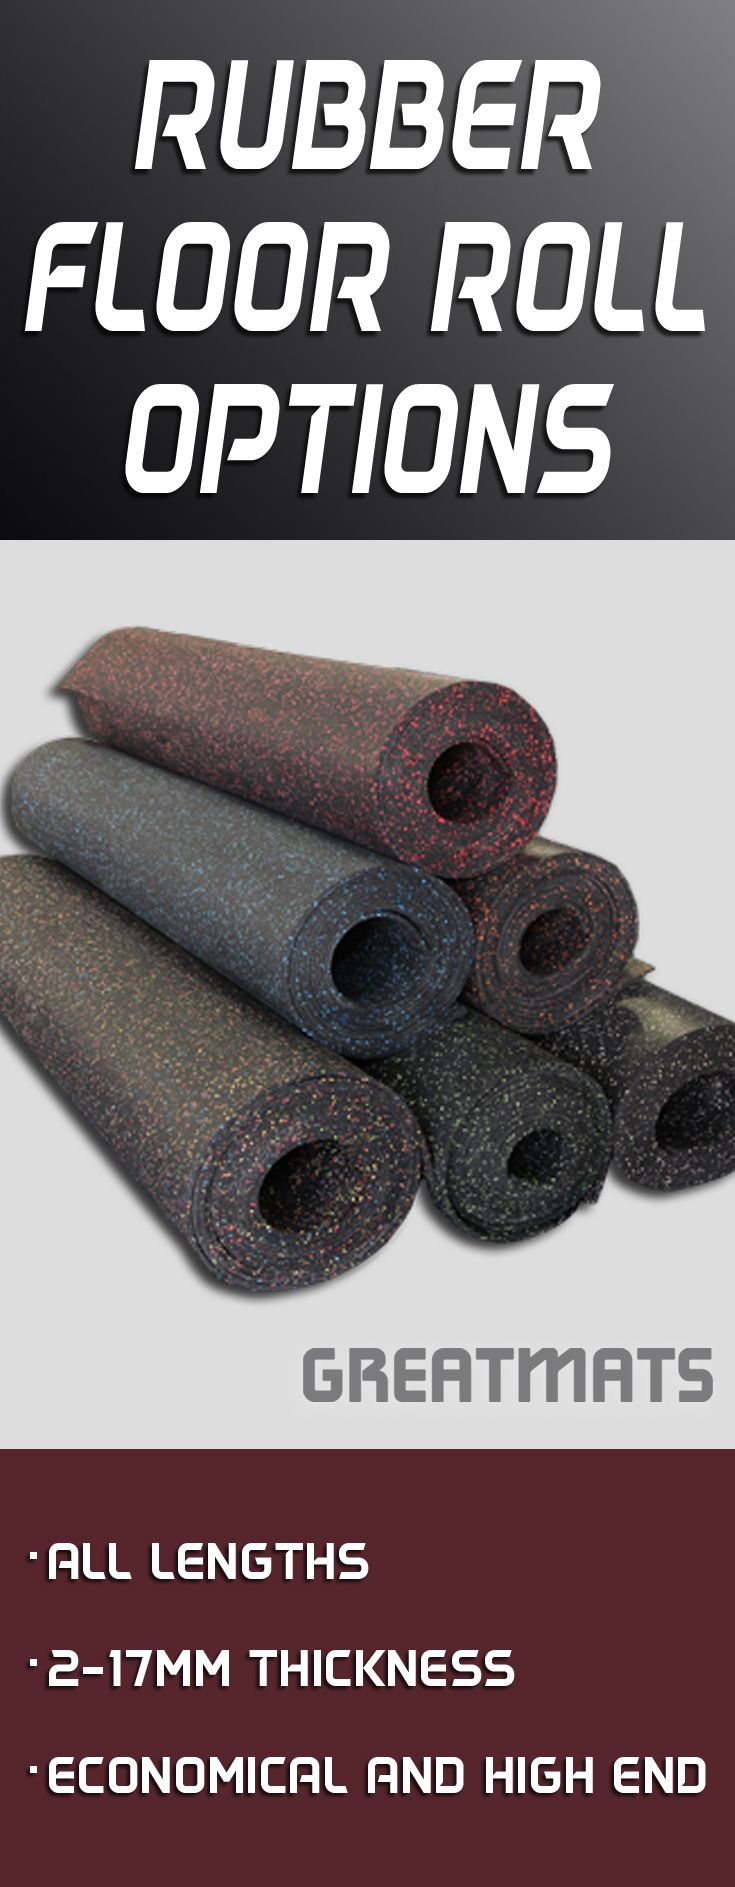 Rubber floor mats barn - Greatmats Offers Rubber Flooring Rolls For Any Occasion And With One Of The Larges Selections Of